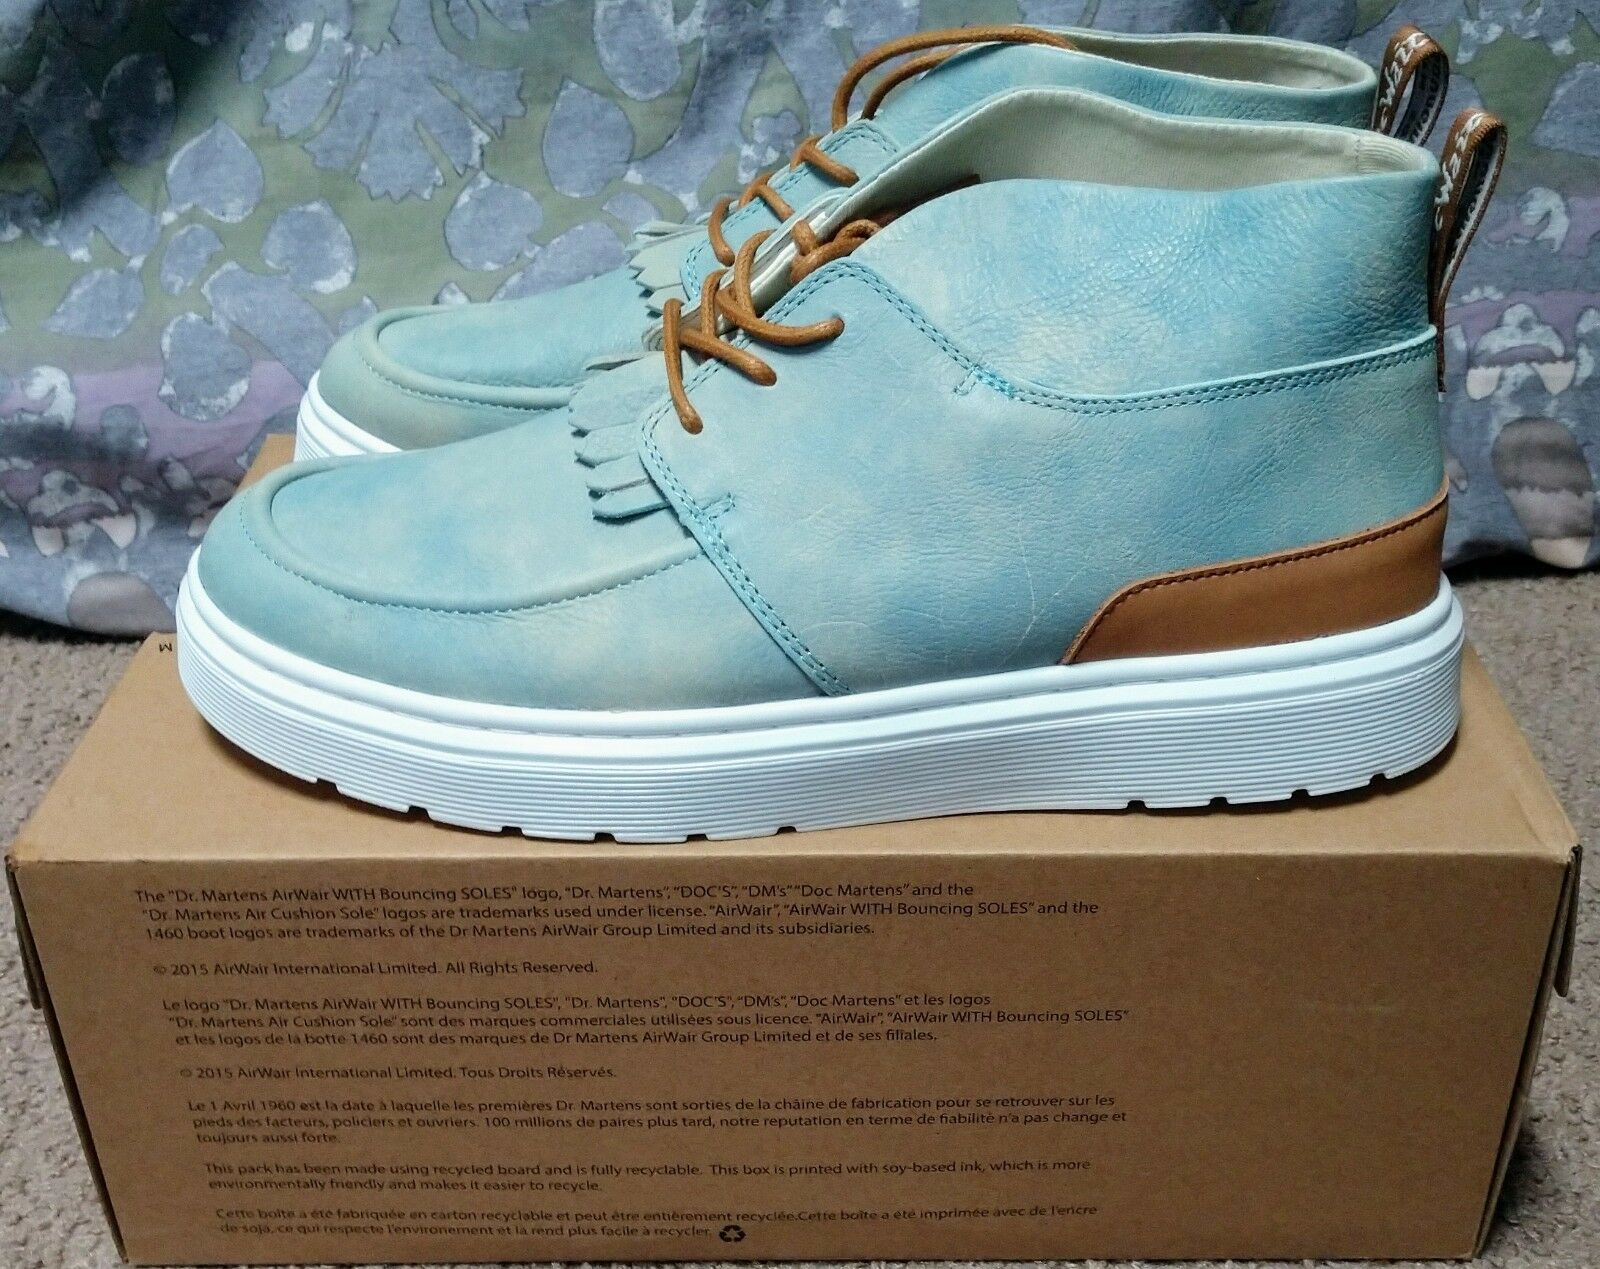 Dr. Martens Jemima bluee leather chukka boots size womens 11 (runs large)